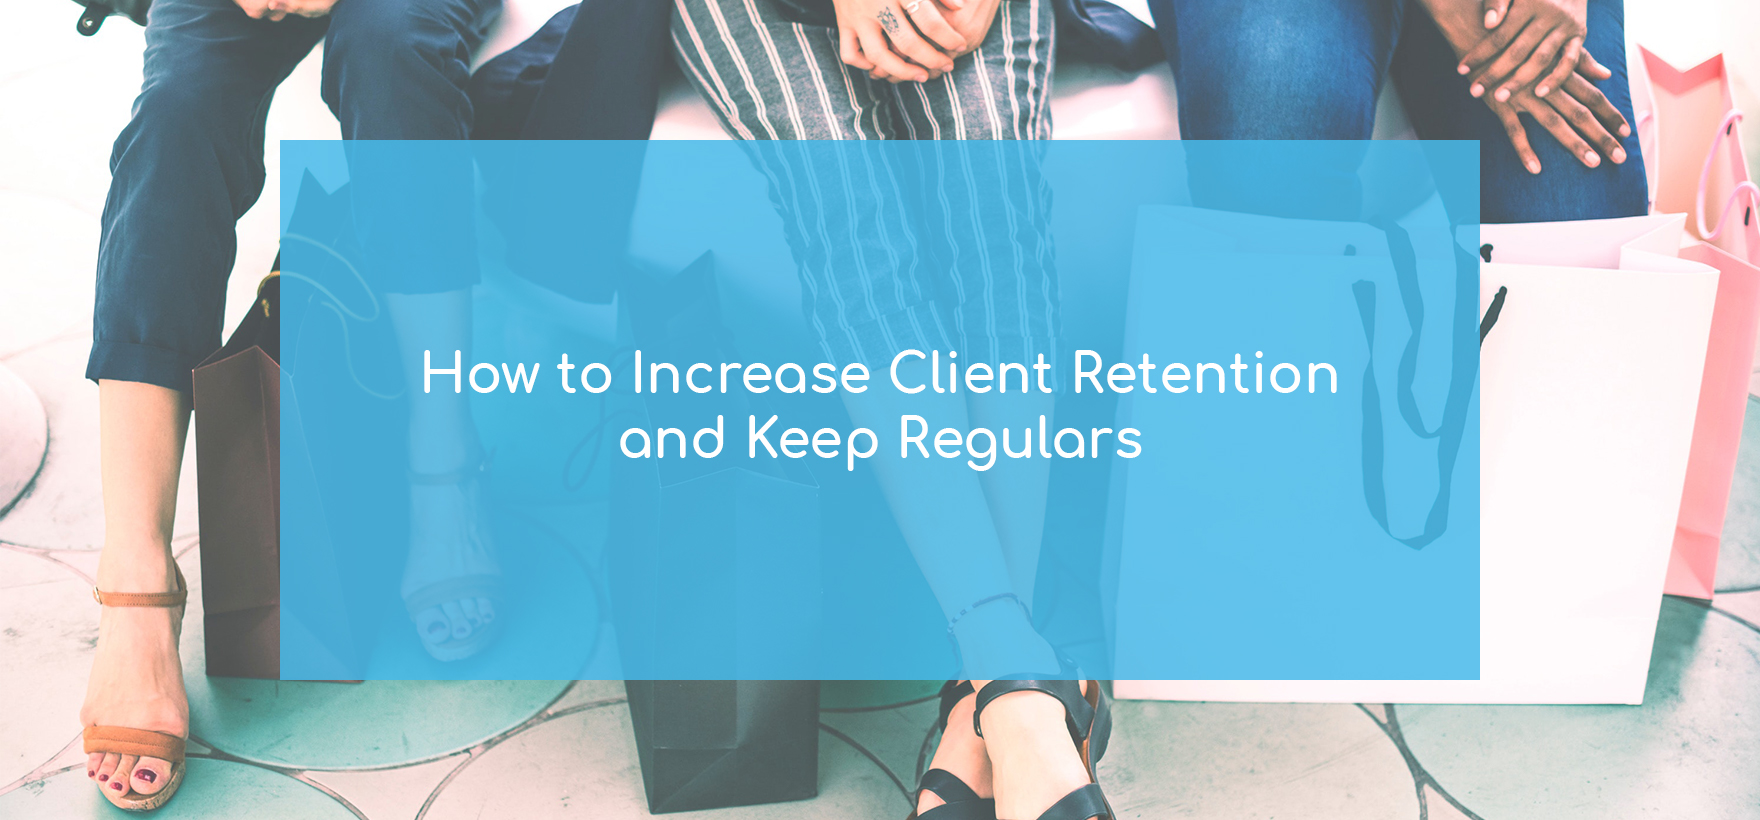 How to increase salon clientele. How to Increase Client Retention and Keep Regulars